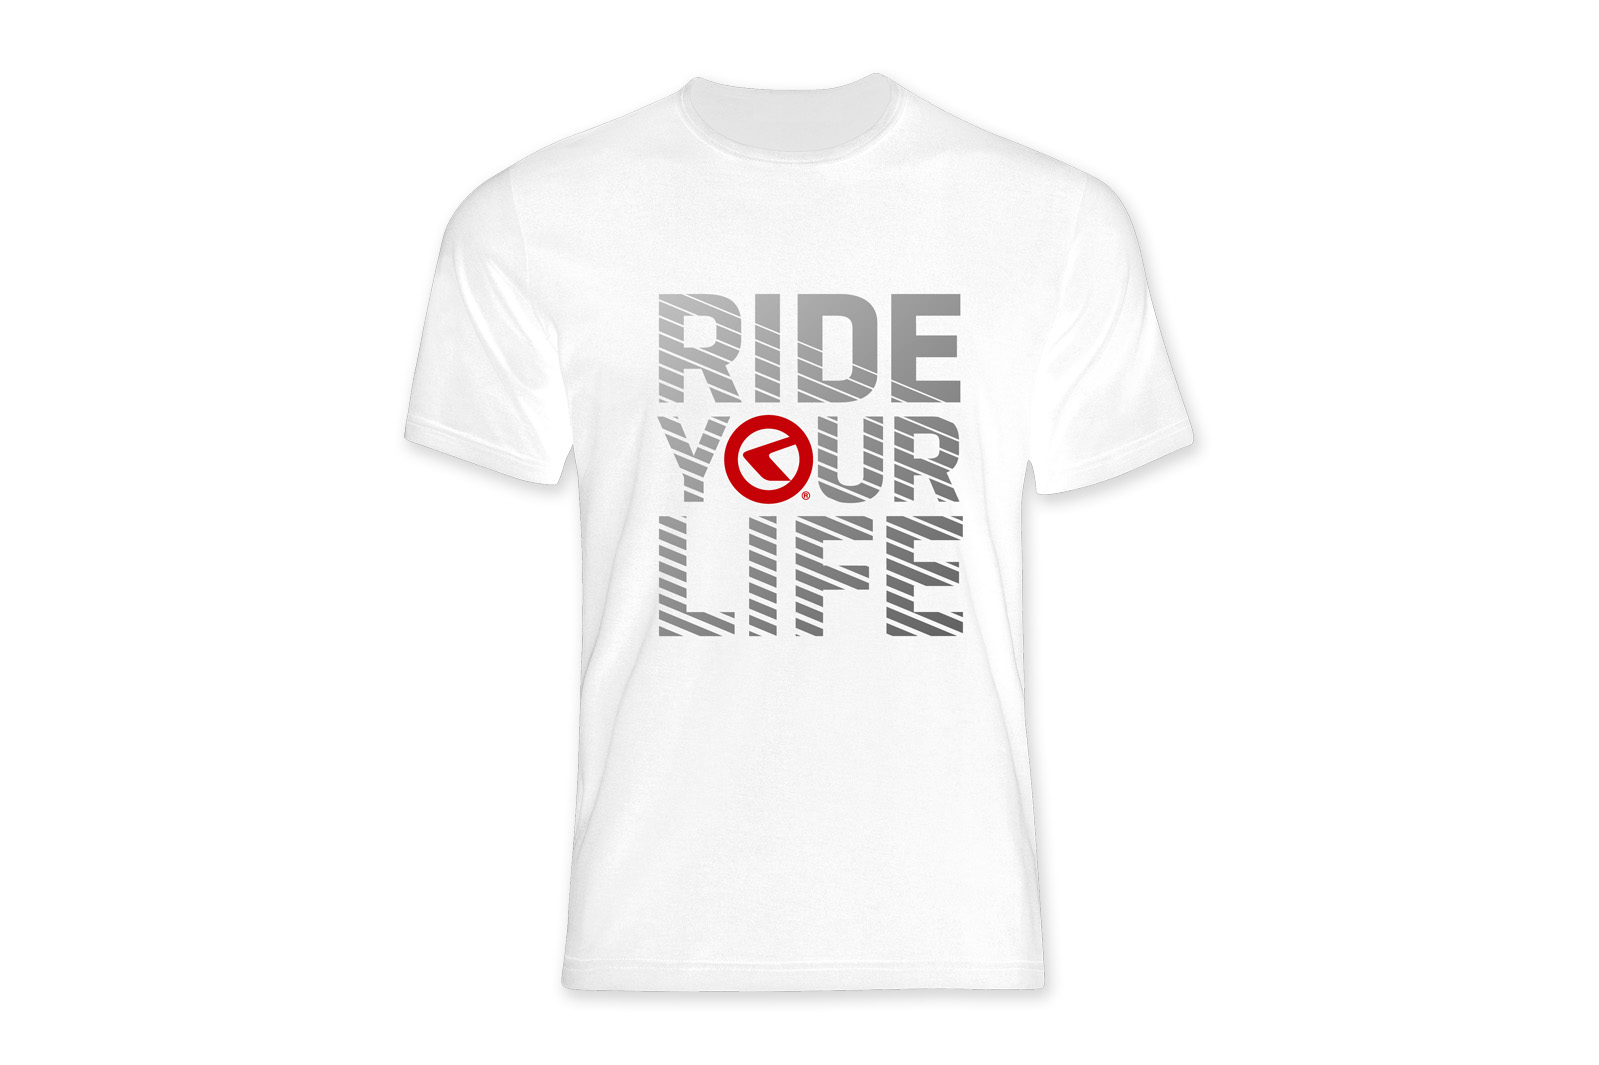 T-Shirt KELLYS RIDE YOUR LIFE kurzarm white - XXL - T-Shirt KELLYS RIDE YOUR LIFE kurzarm white - XXL